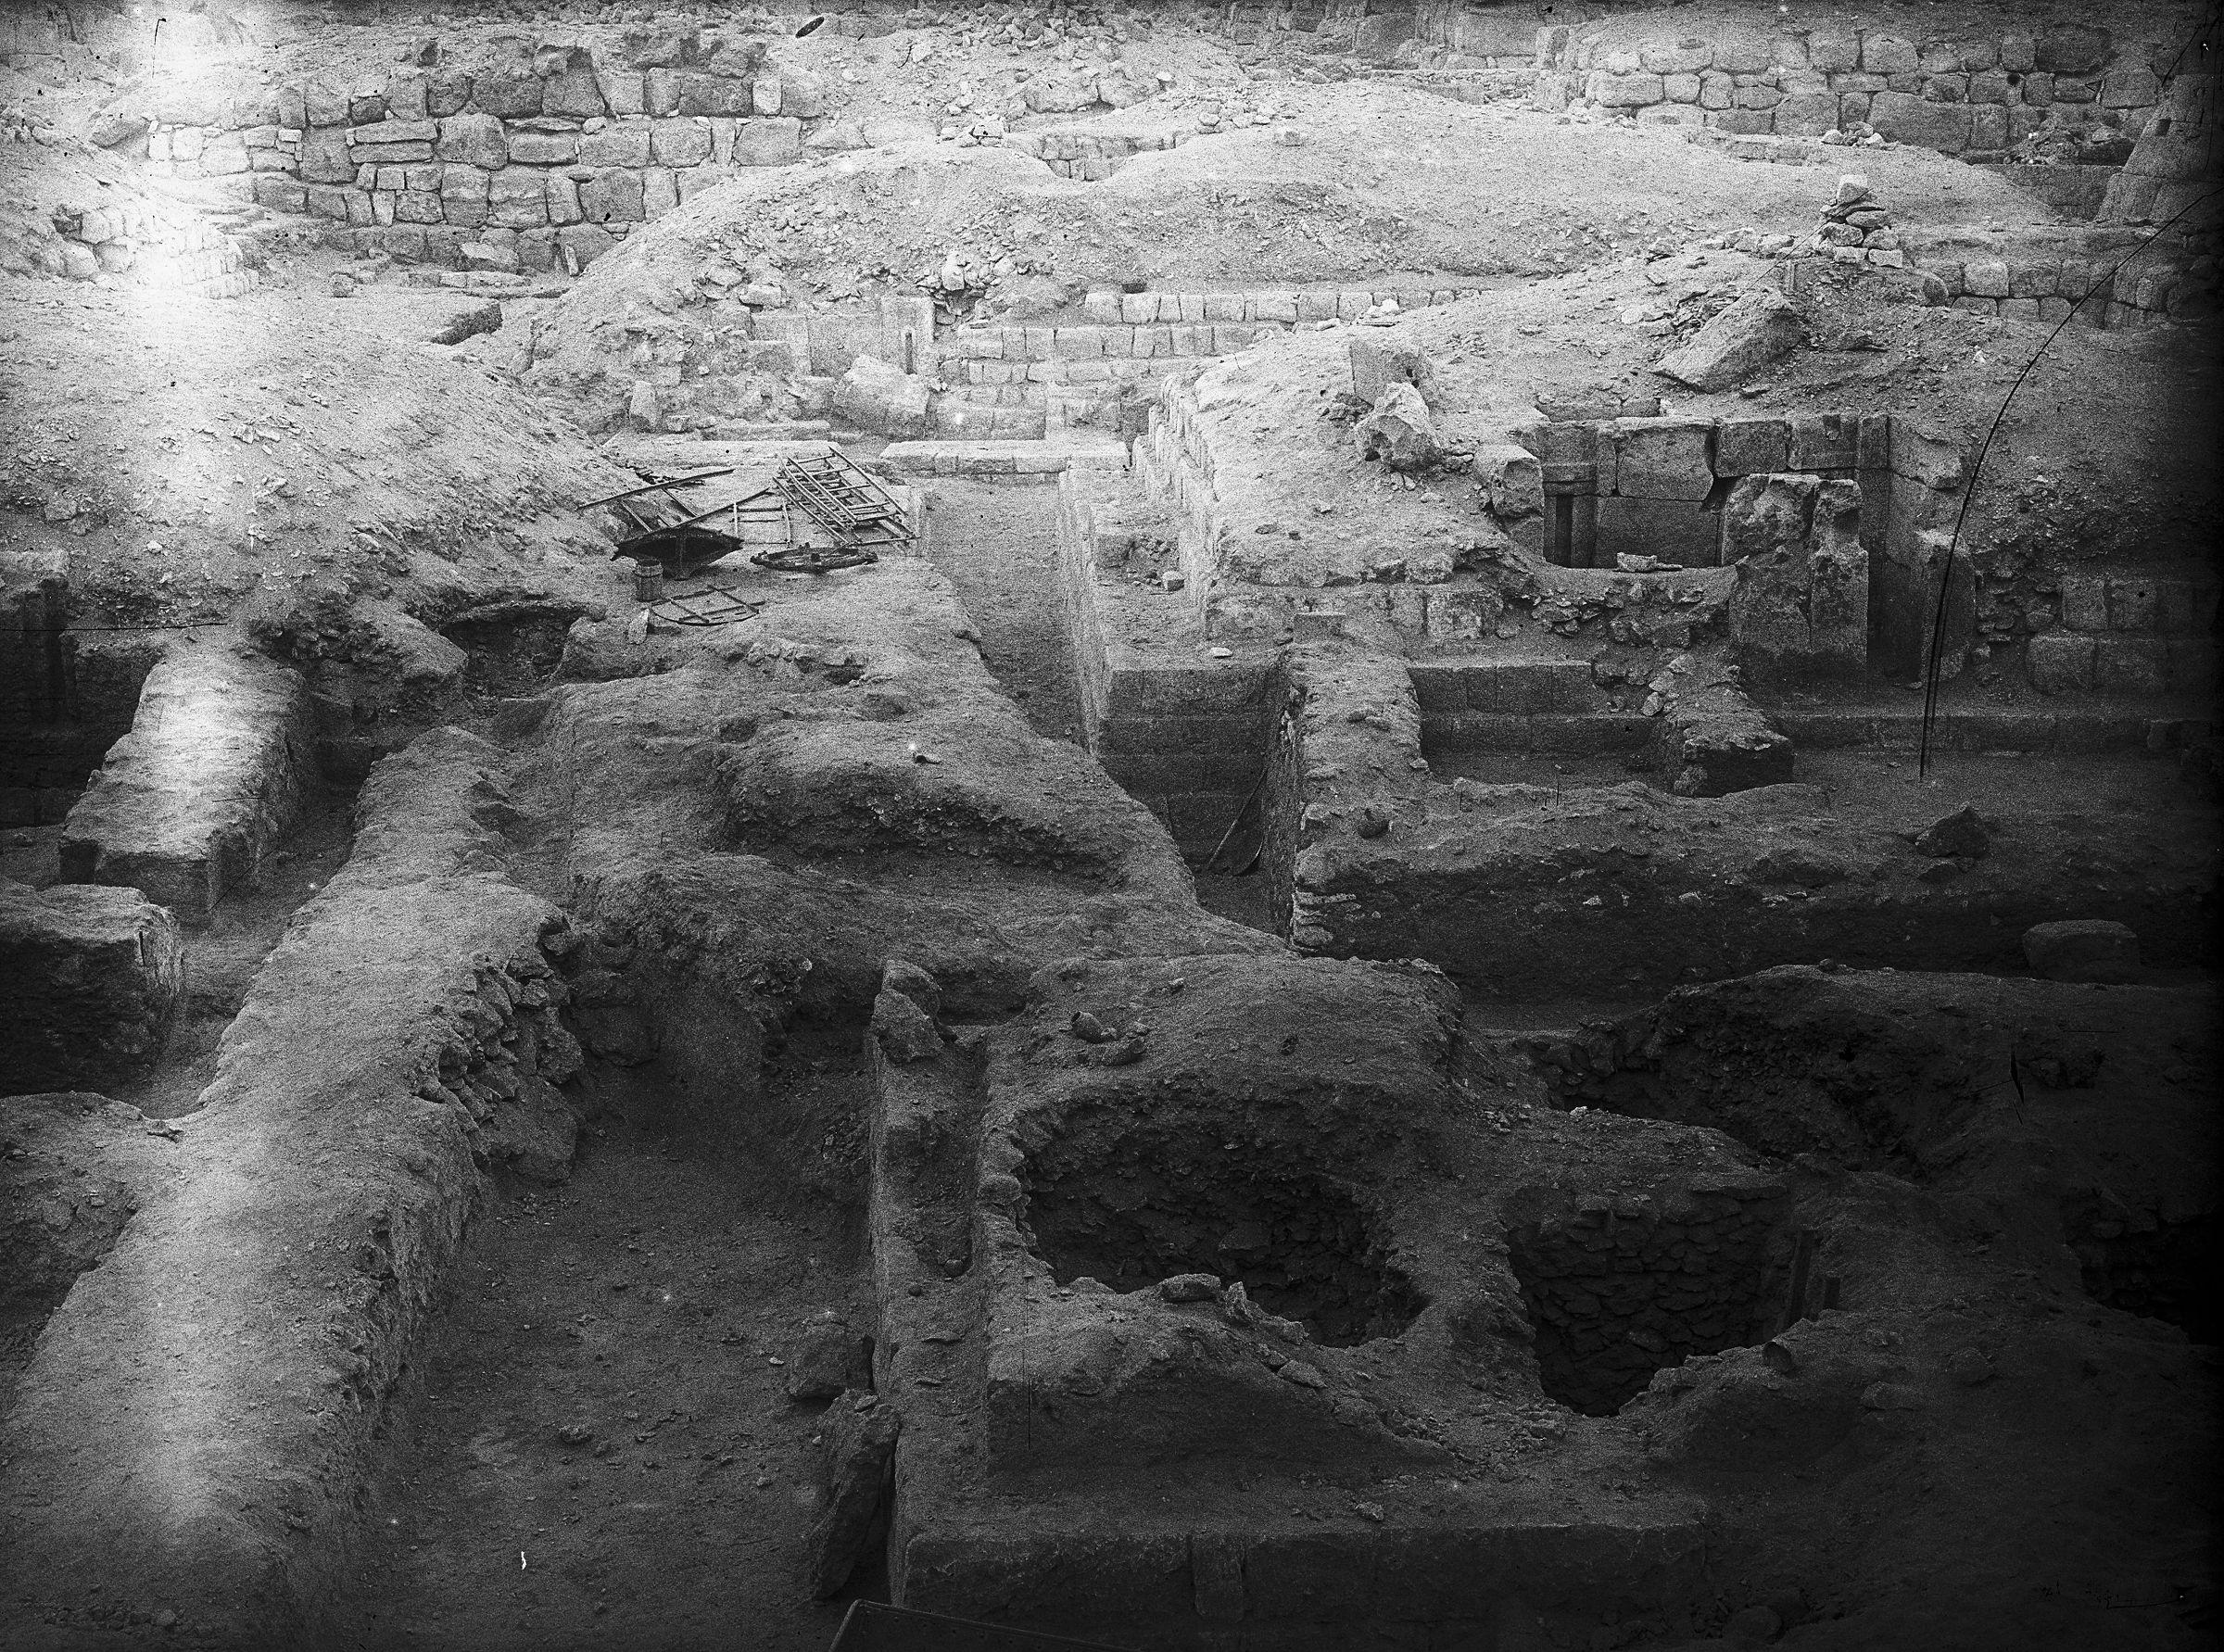 Western Cemetery: Site: Giza; View: G 5131, G 5020, G 5030, G 4930